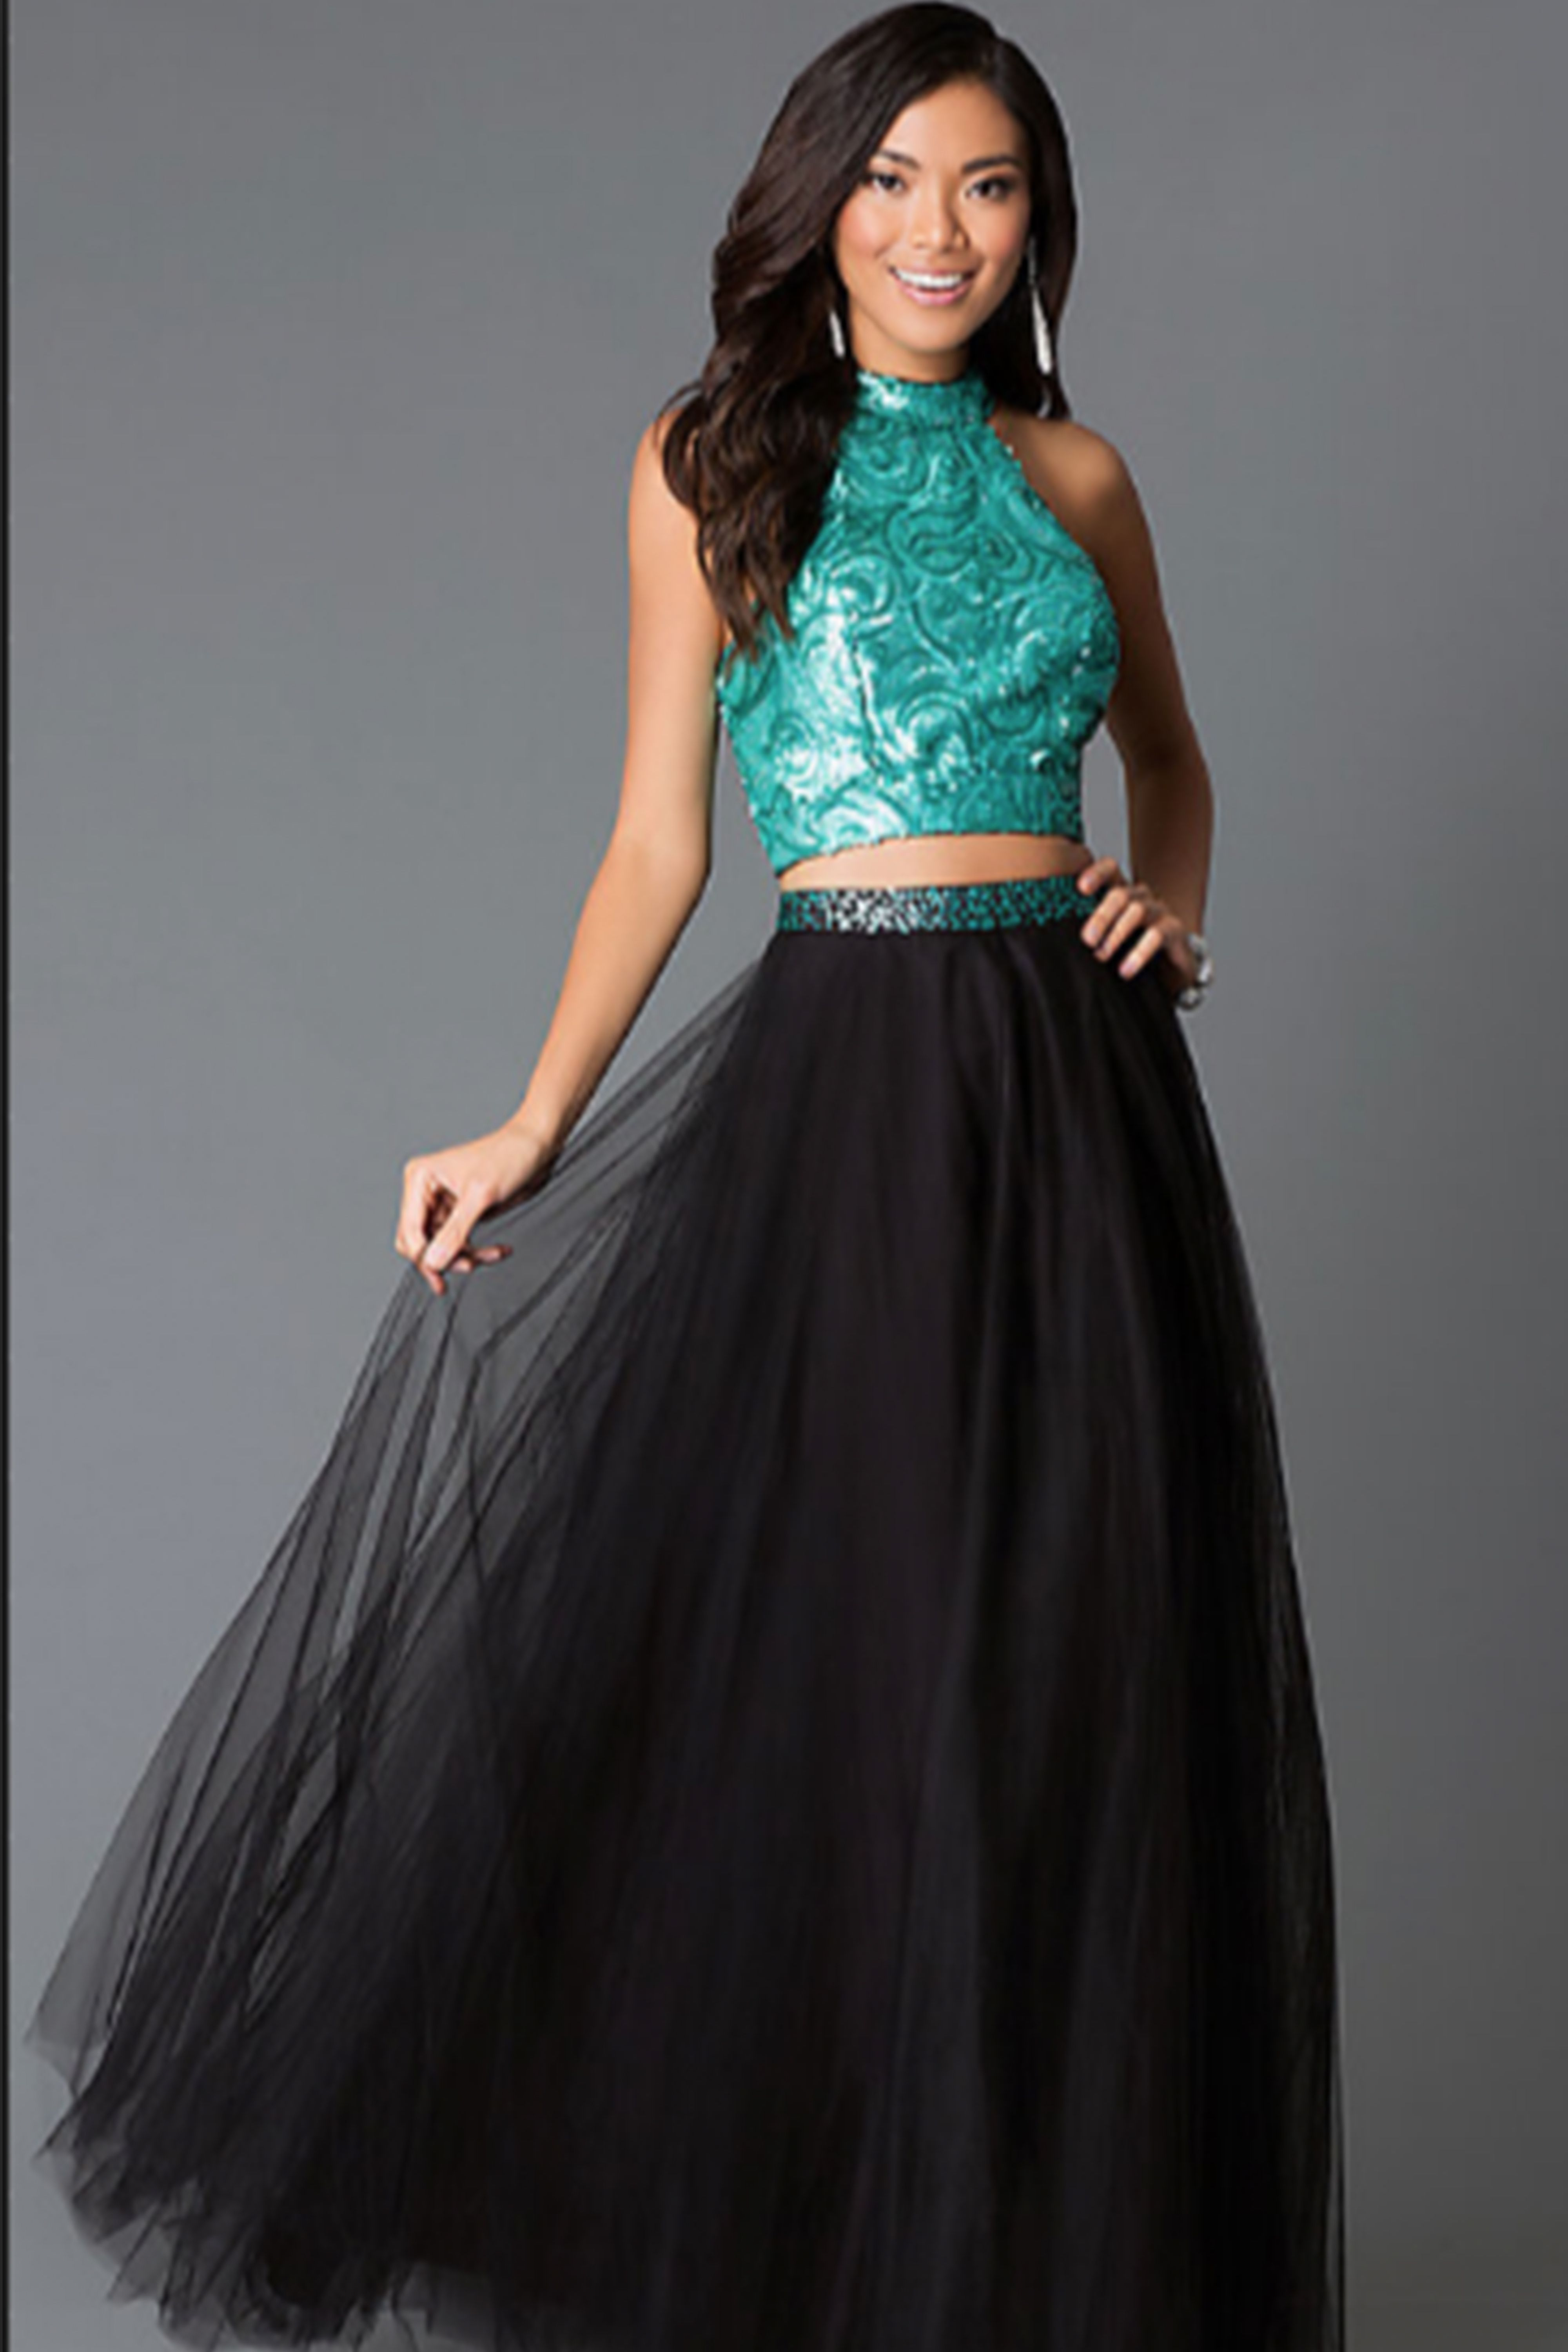 19 Best Two Piece Prom Dresses Of 2018 Stylish Crop Top Prom Dresses